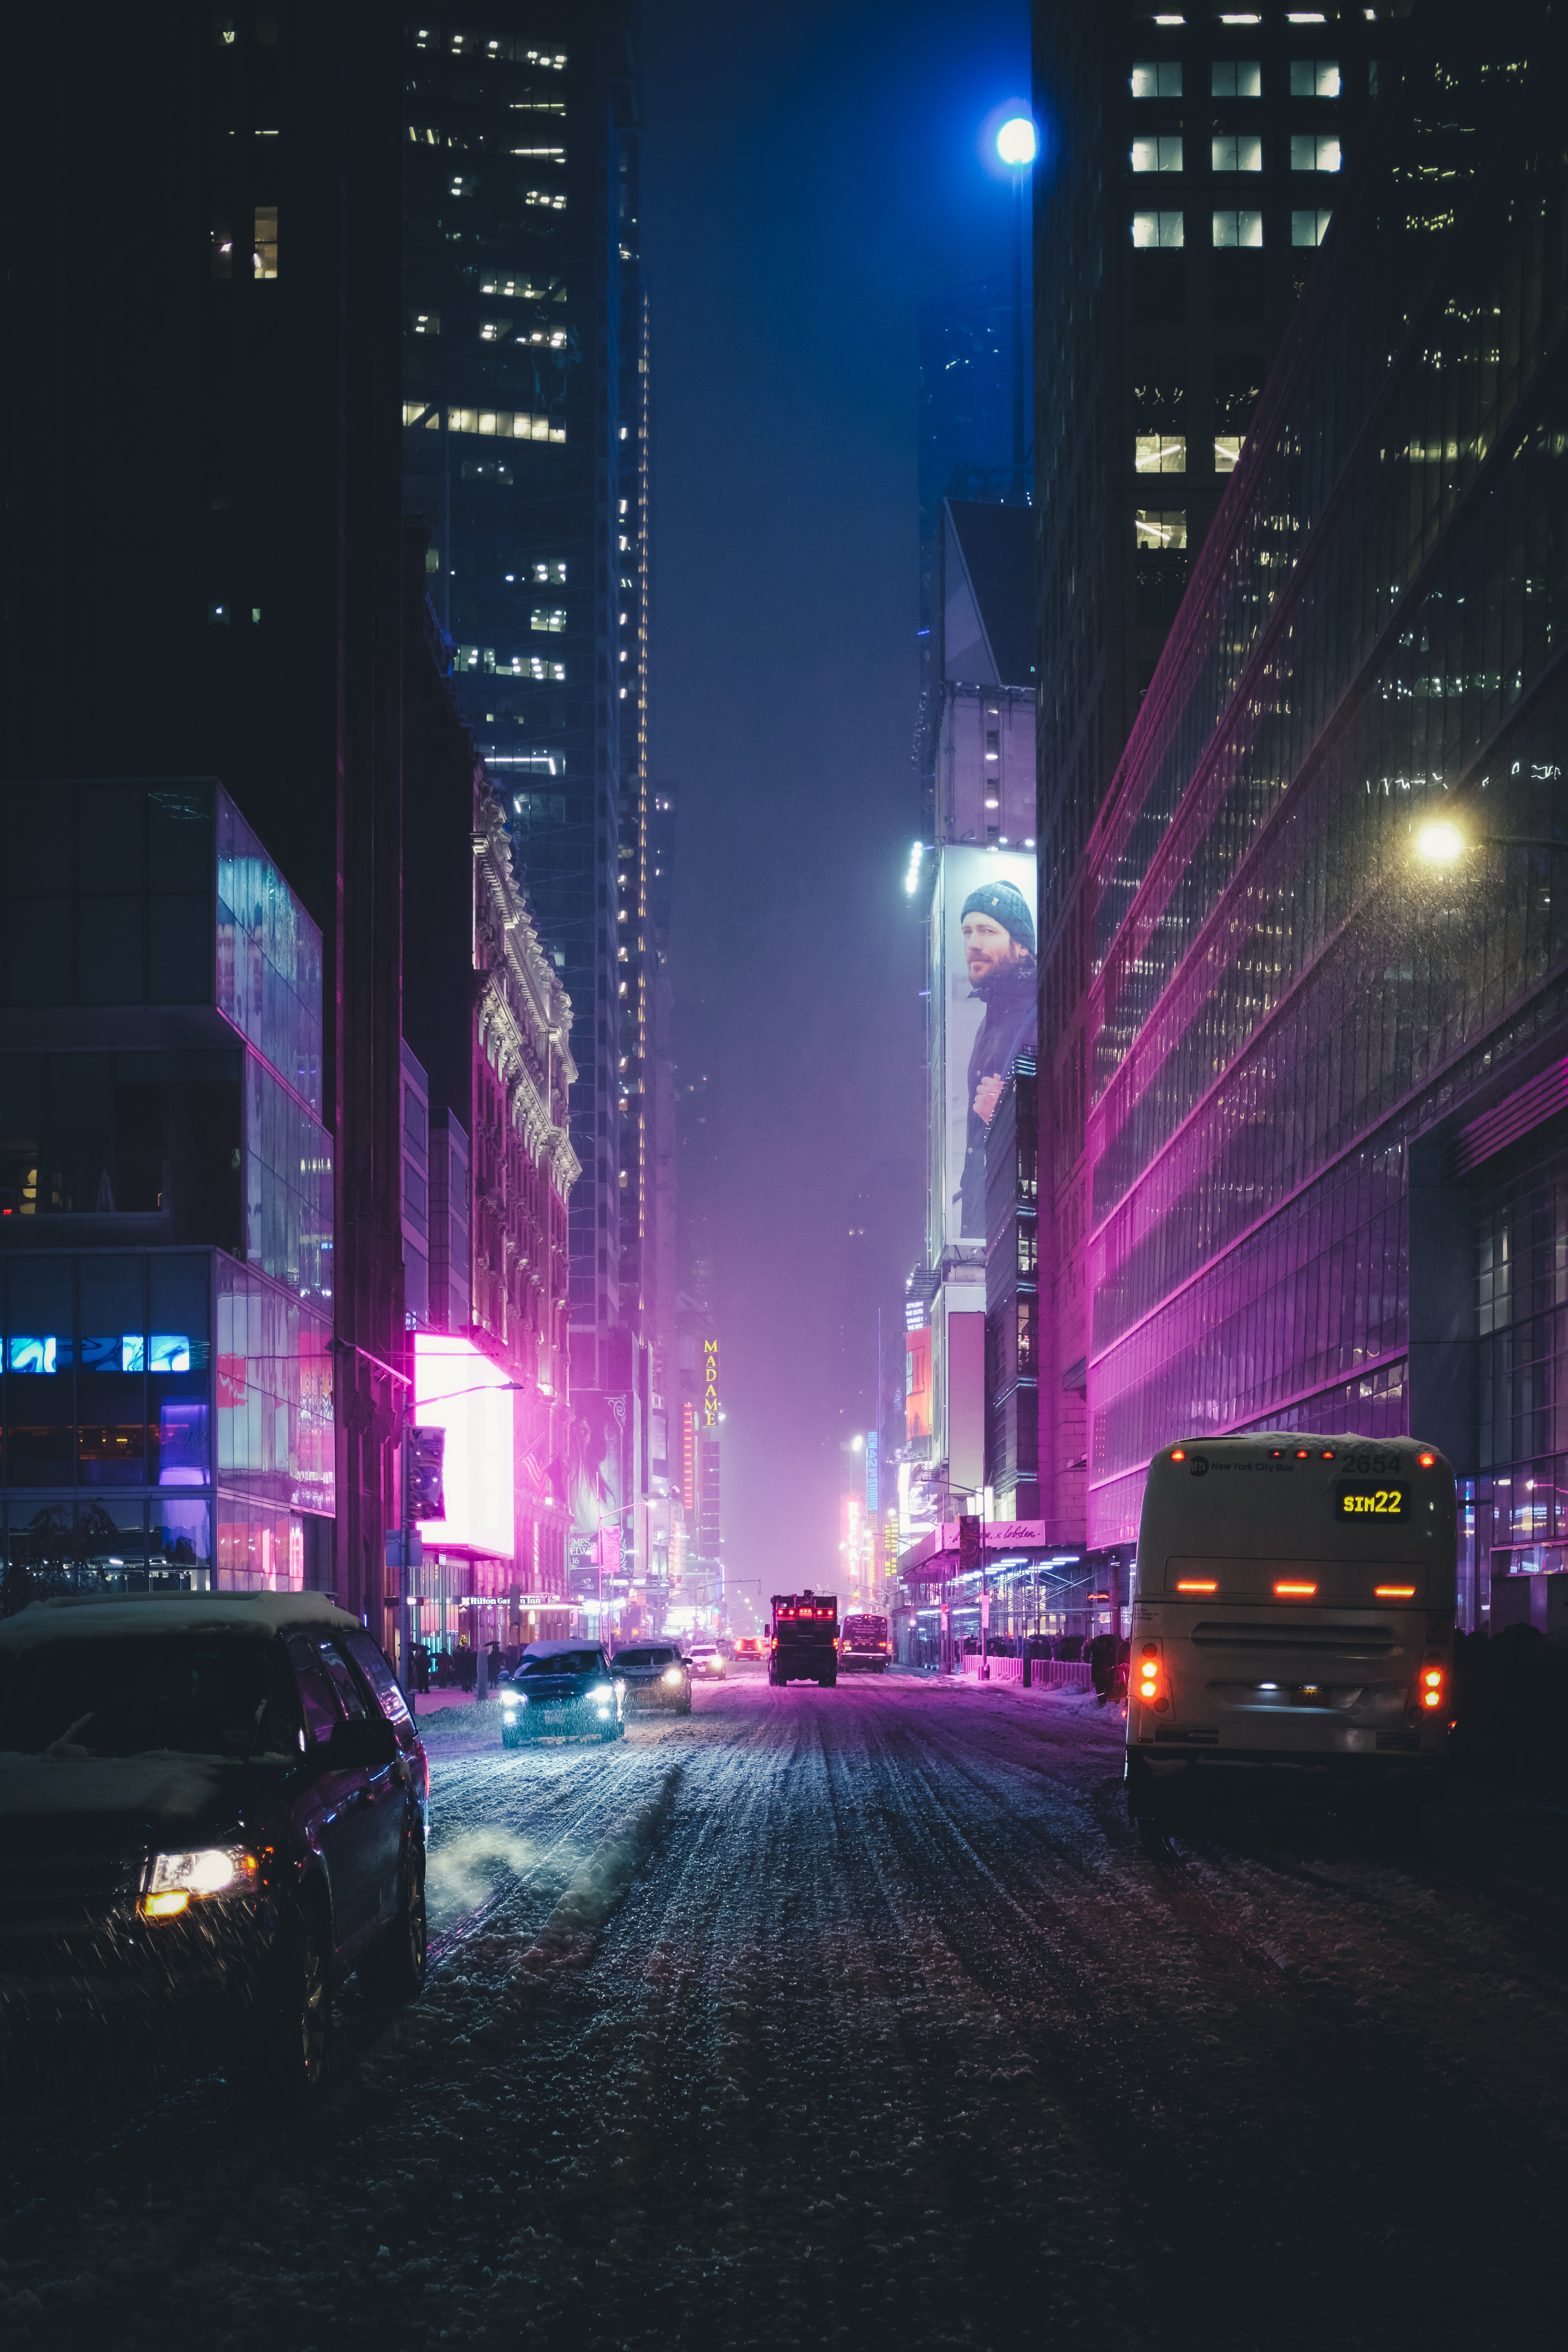 118320 download wallpaper Night City, Street, Skyscrapers, City Lights, Traffic, Movement, New York, Usa, United States, Cities screensavers and pictures for free